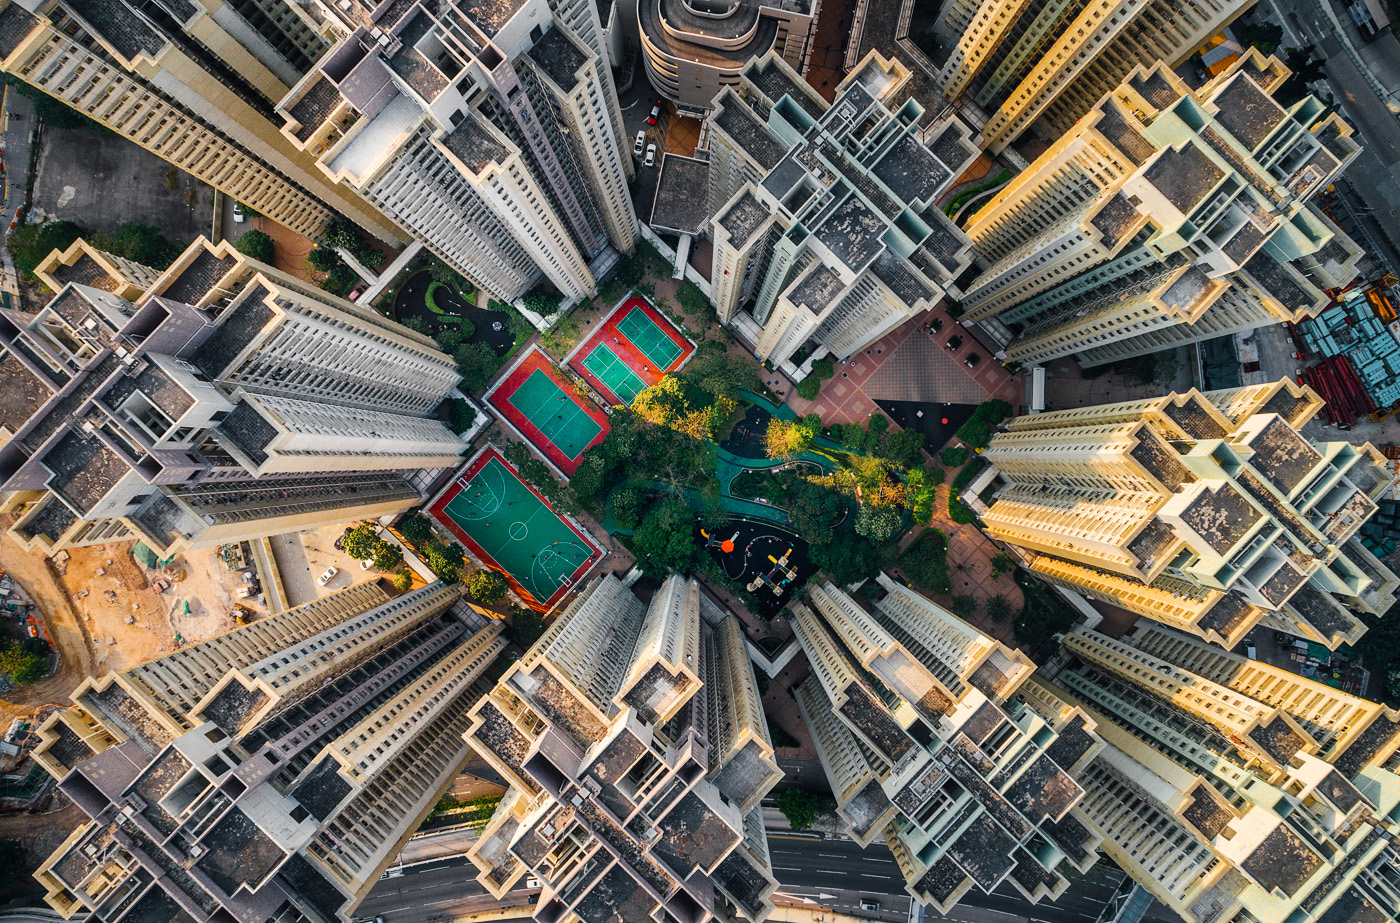 Stunning Drone Photographs of Hong Kong